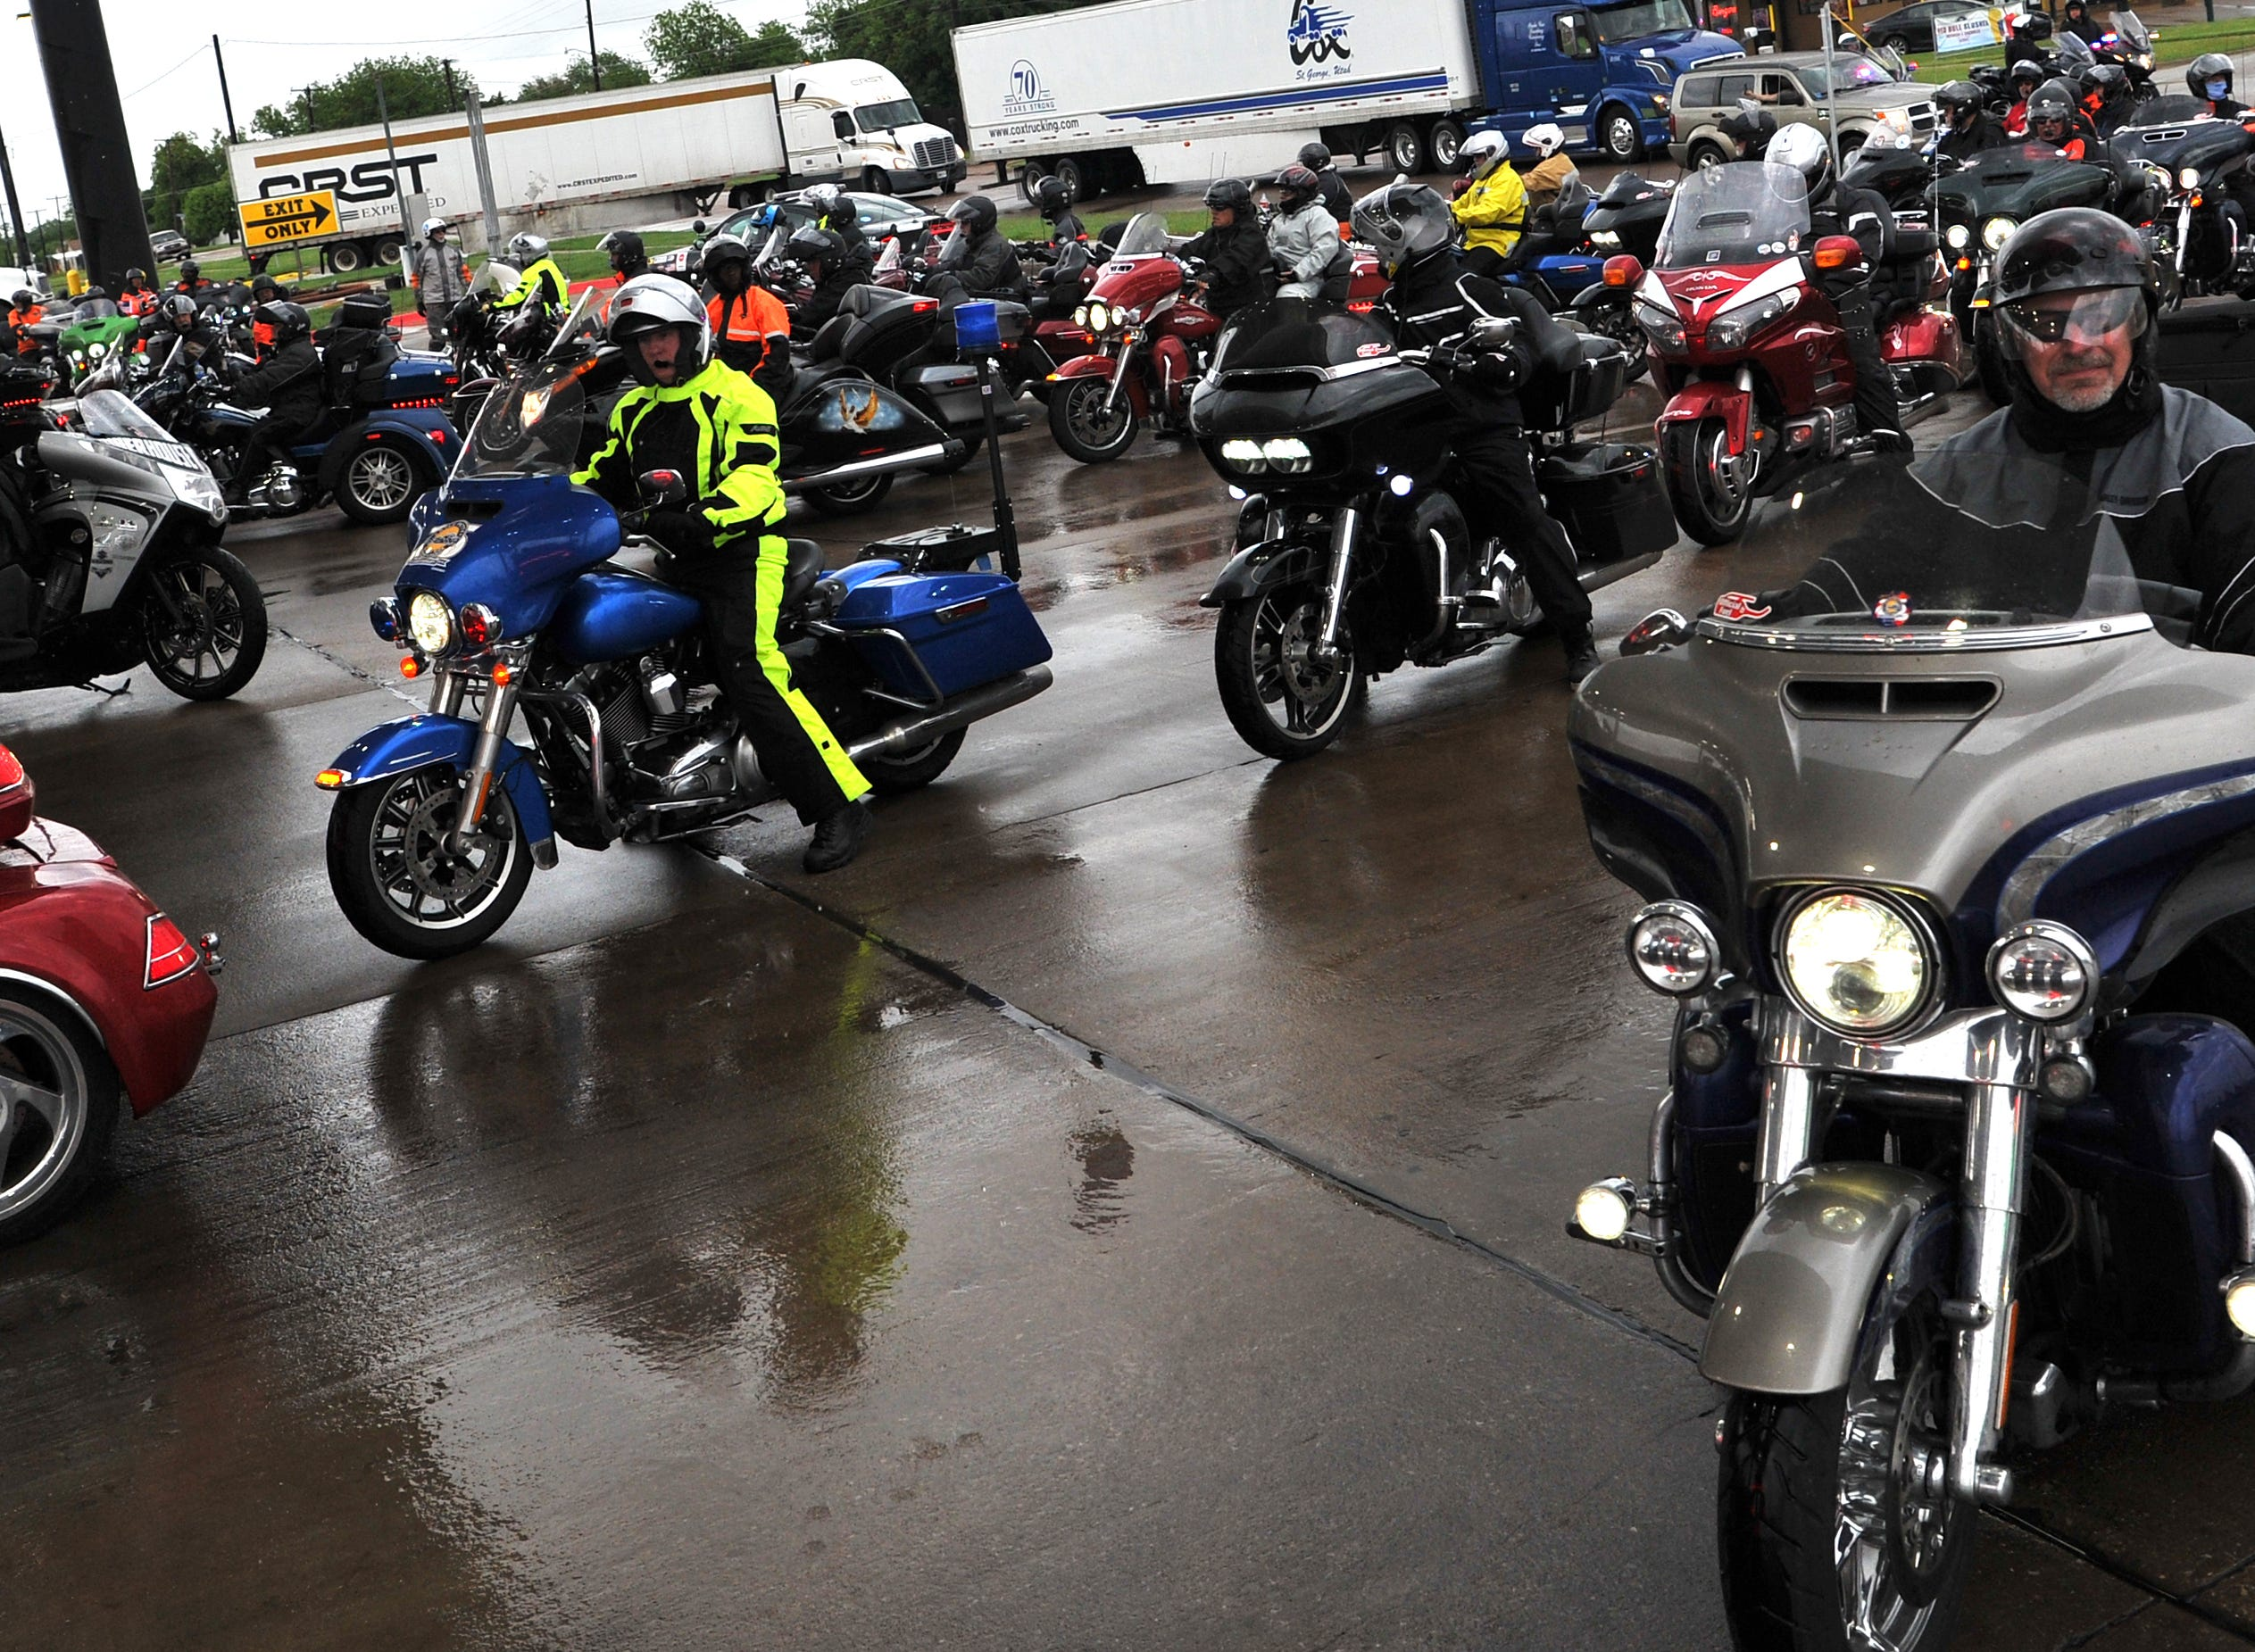 Hundreds of participants in Kyle Petty's Charity Ride made a pitstop to refuel in Wichita Falls, Wednesday morning.